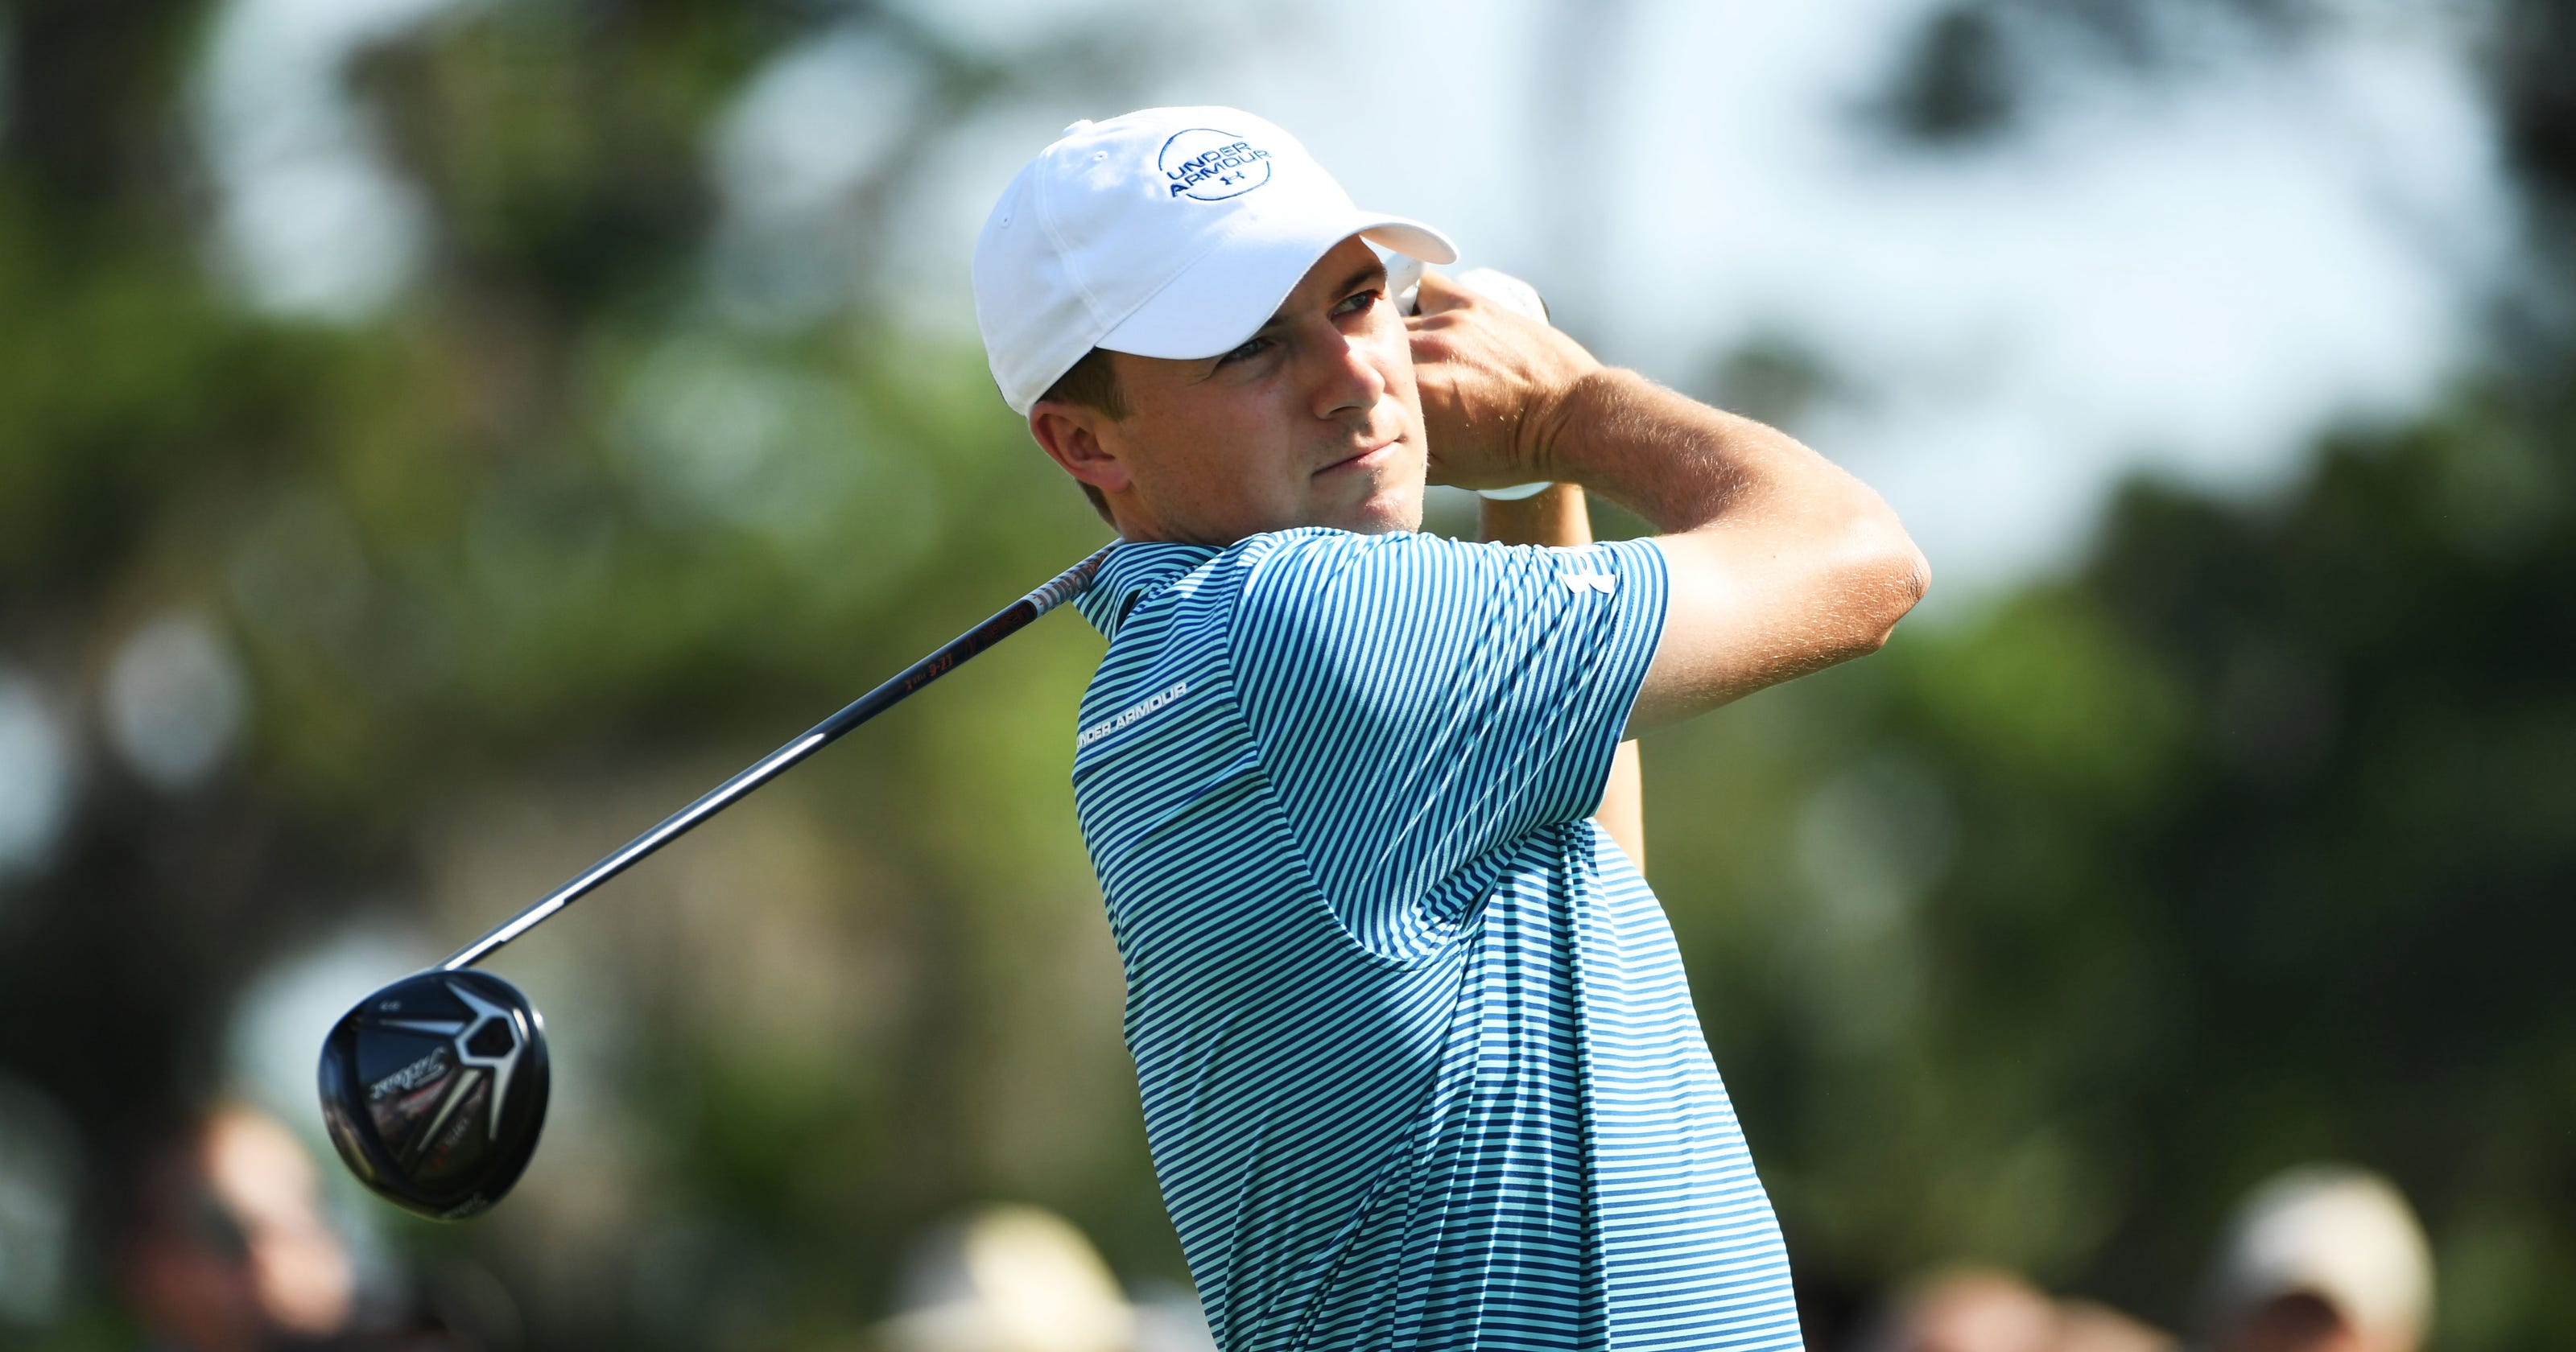 Jordan Spieth has disappointing 75 in first round at The Players  Championship 97eed39f1